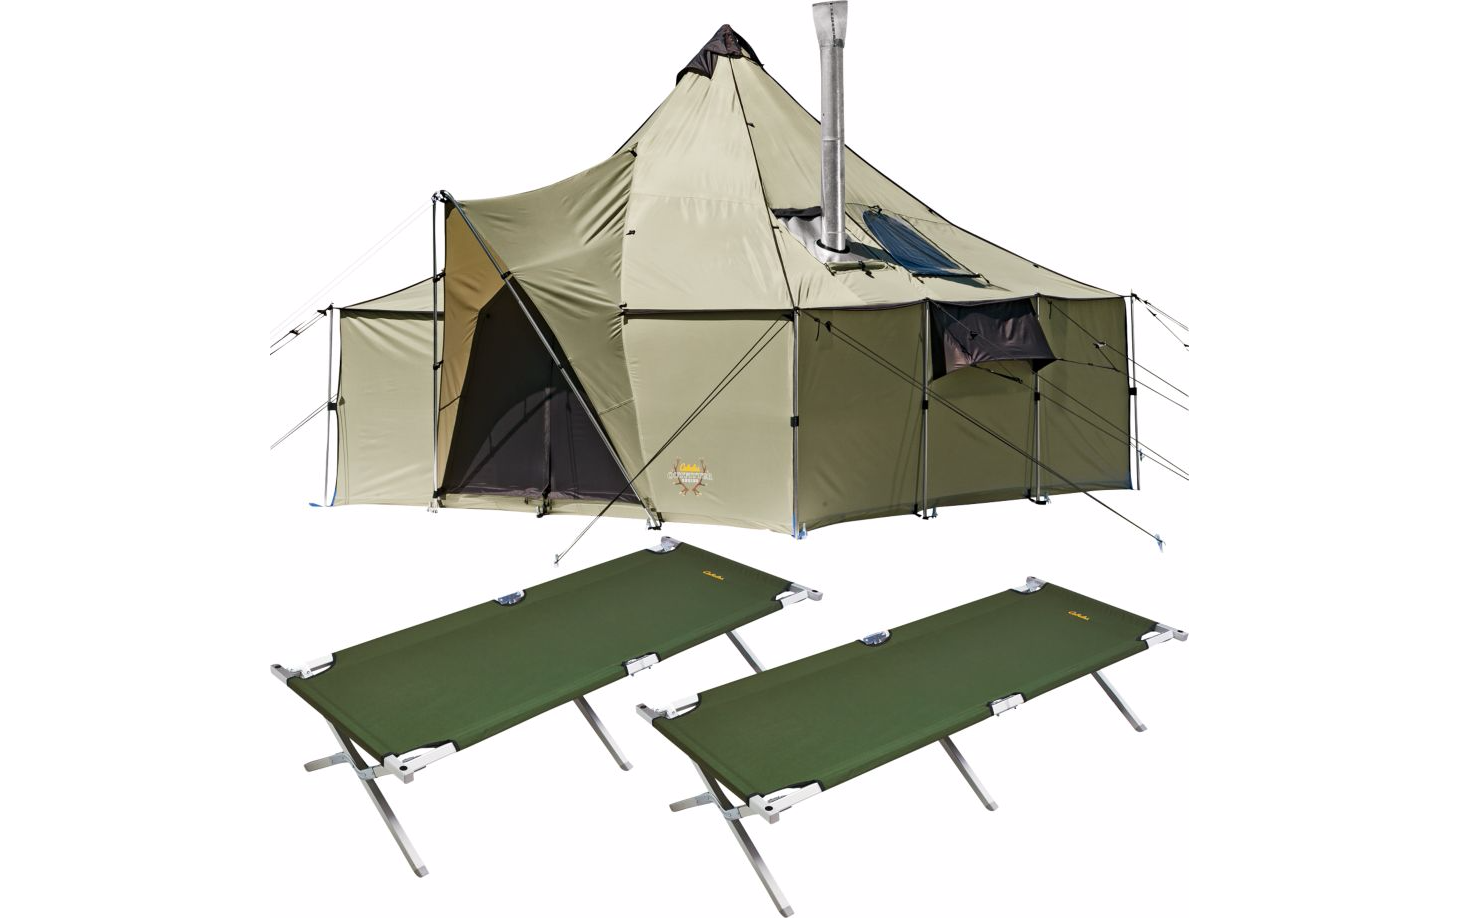 Cabelas Hunting Tent Sc 1 St Good Game Hunting  sc 1 st  memphite.com & Hunters Tent u0026 Cabelas Hunting Tent Sc 1 St Good Game Hunting